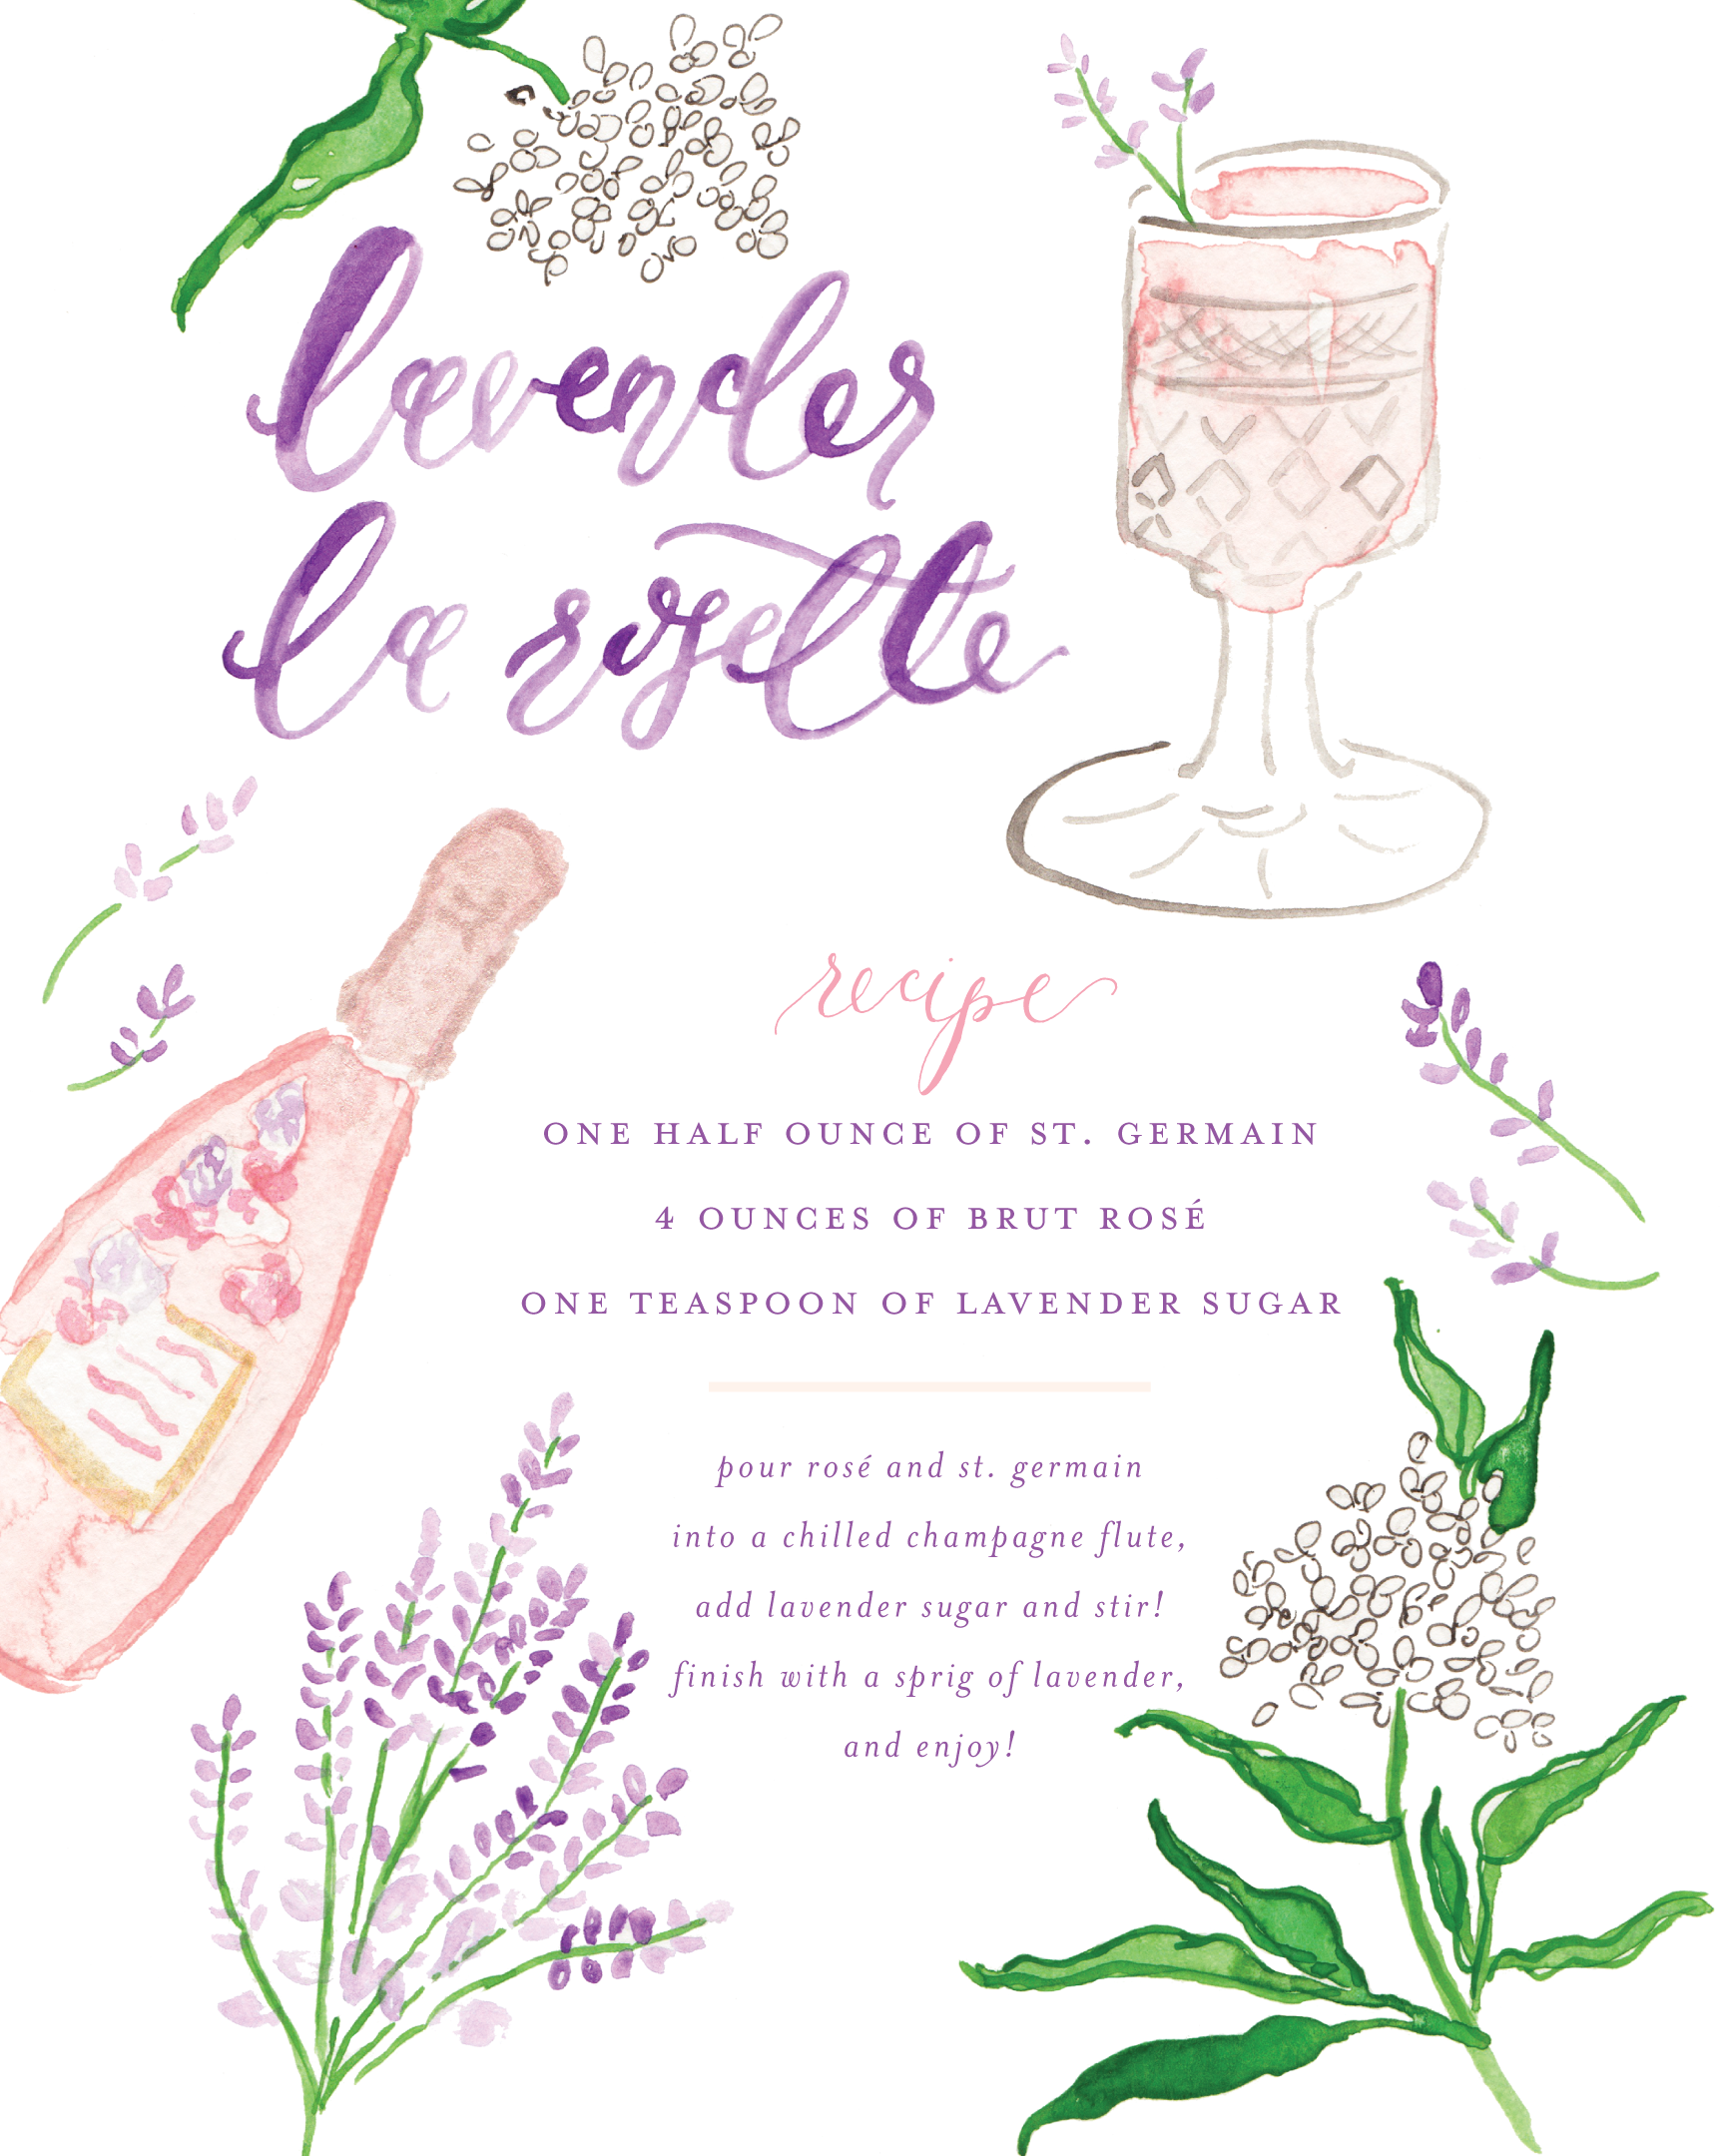 Lavender La Rosette Cocktail Recipe with Watercolor Illustration by Simply Jessica Marie